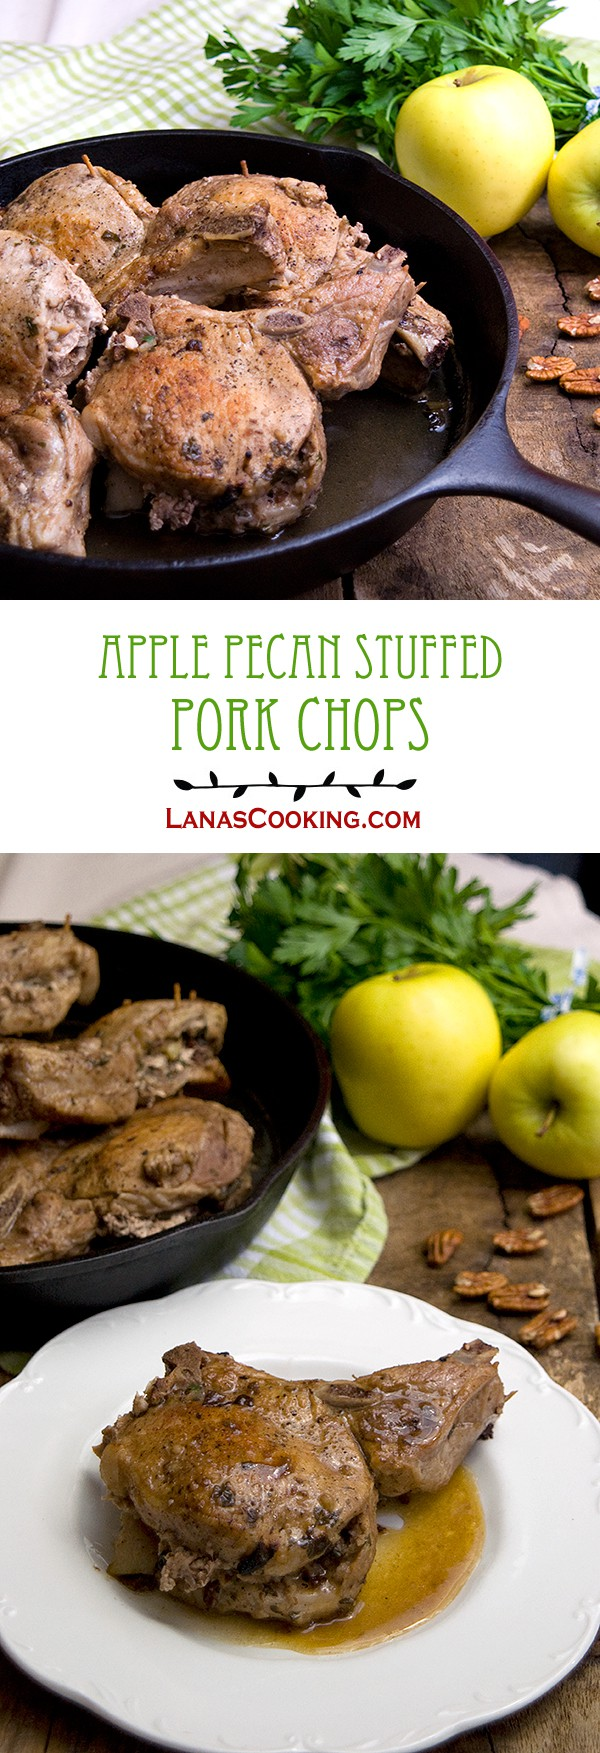 Use some of fall's bounty to make these Apple Pecan Stuffed Pork Chops. Perfect for company or family weekend dinner. From @NevrEnoughThyme http://www.lanascooking.com/apple-pecan-stuffed-pork-chops/ #apples #pork